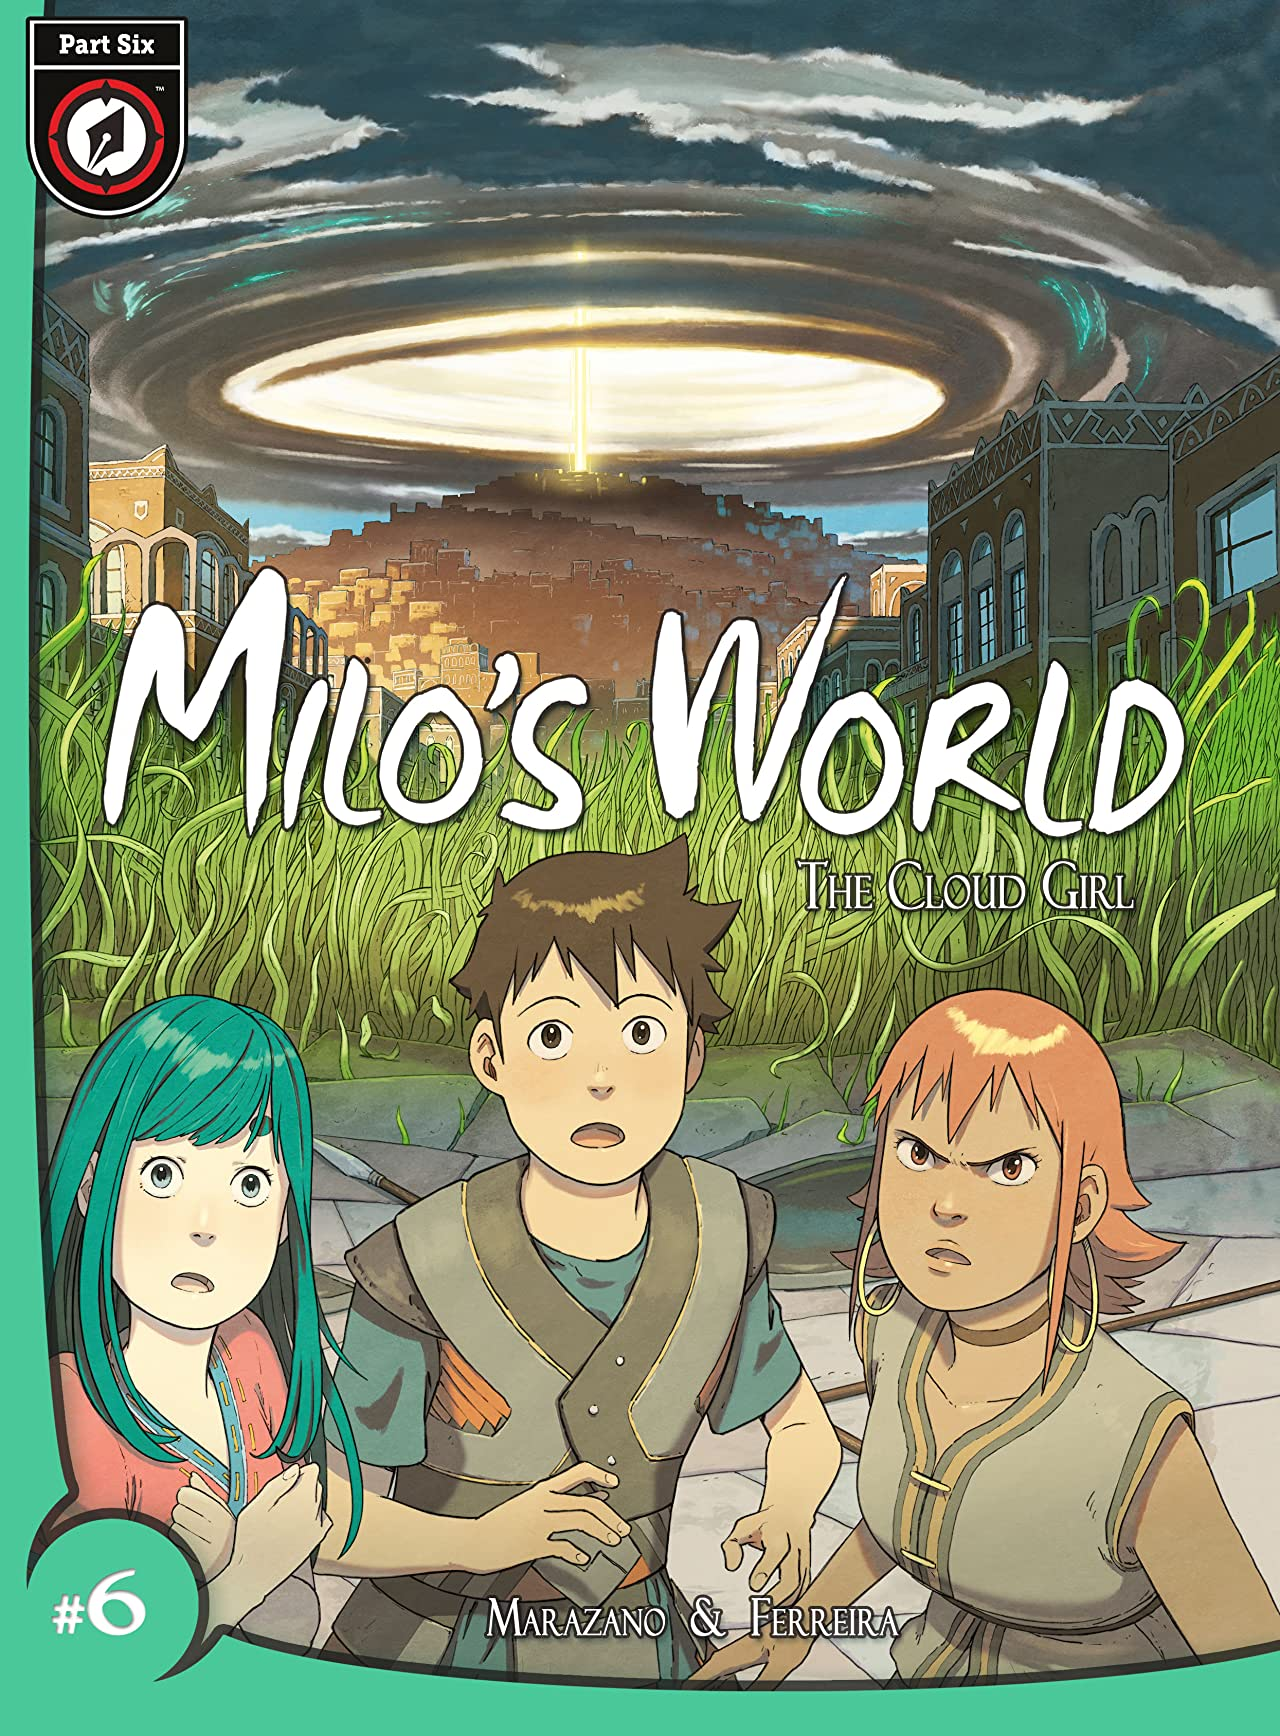 Milo's World Vol. 3 #6: The Cloud Girl